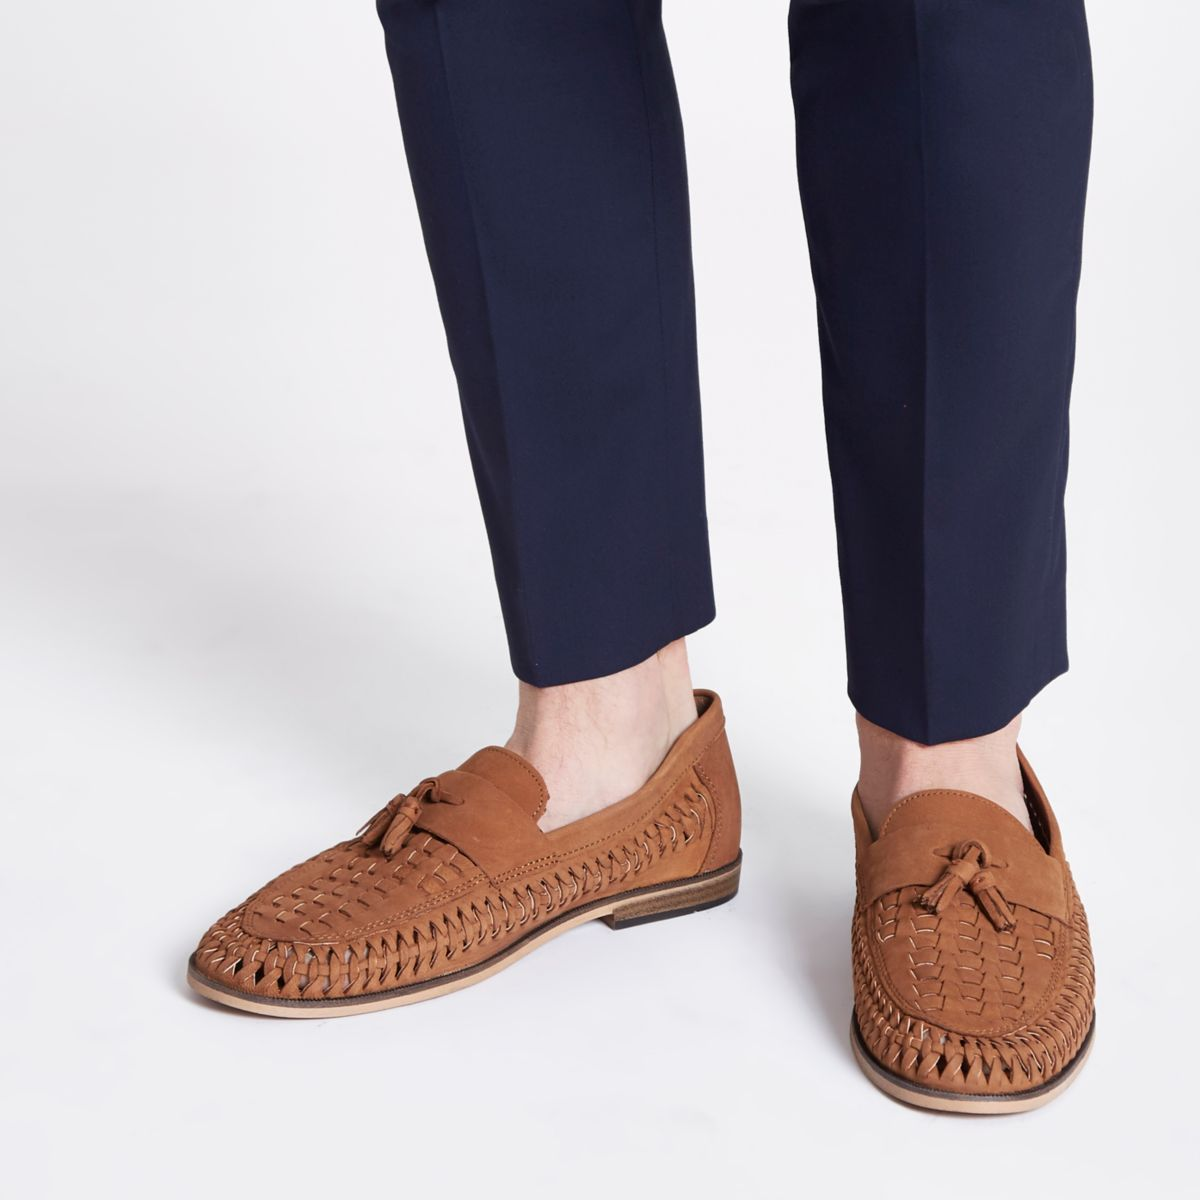 River Island loafers - £45 - Perfect Bank Holiday footwear, to be worn with slightly cropped trousers and a smile